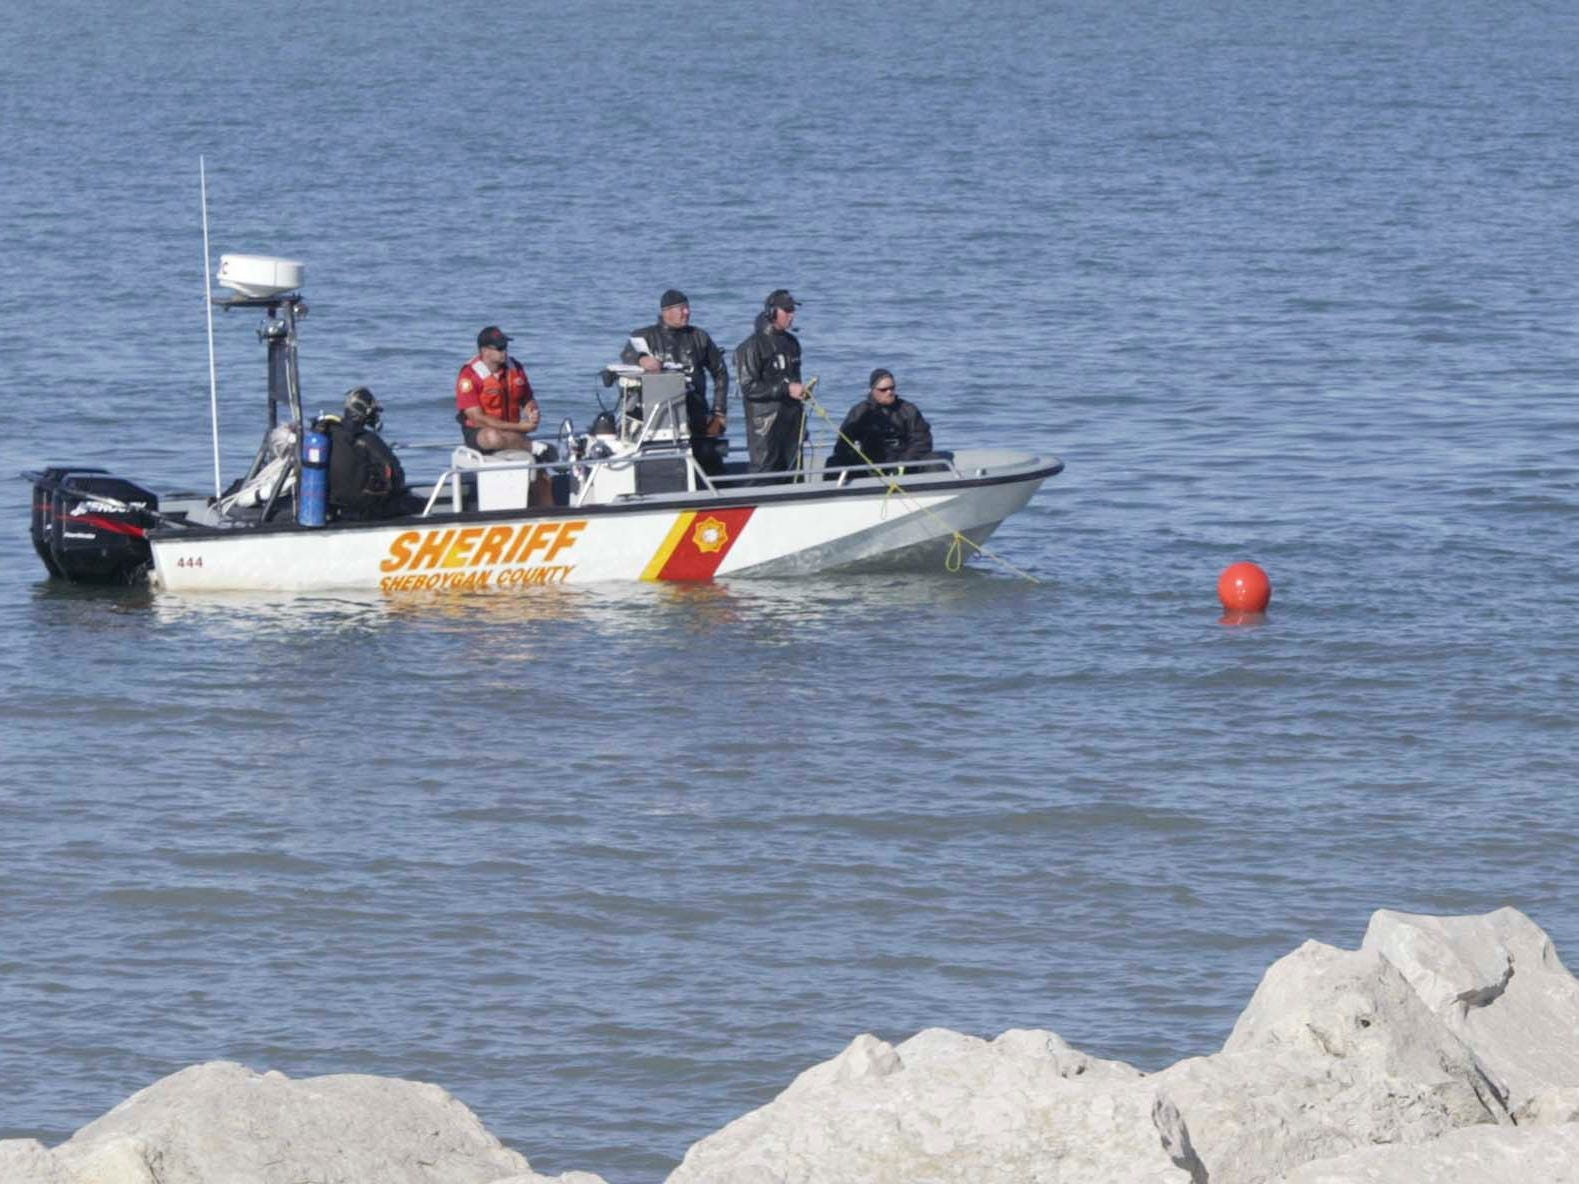 Rescue officials and a scuba diver scan the waters of the Sheboygan, Wis. lakefront on Aug. 11, 2008, for John Duong. Duong, 15, of 2623 N. 36th St., was swept underwater by high waves Saturday afternoon while swimming with four friends at North Beach at Deland Park.   FILE PHOTO